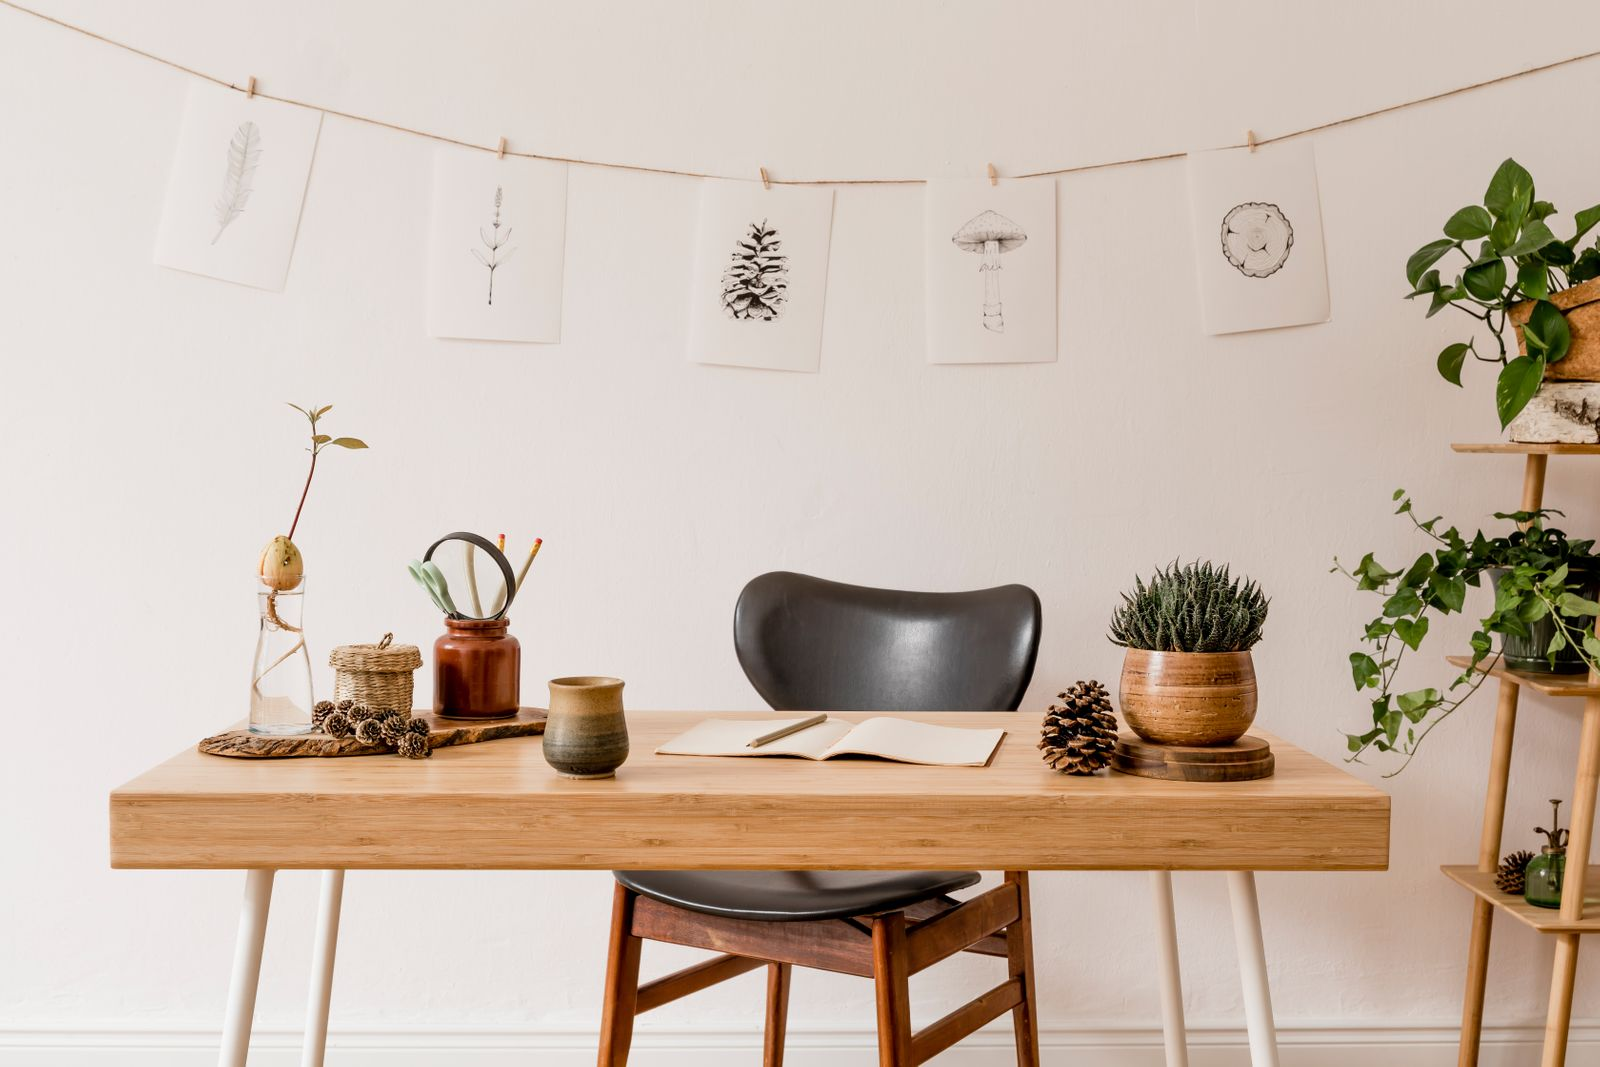 Desk with plants and nature drawings